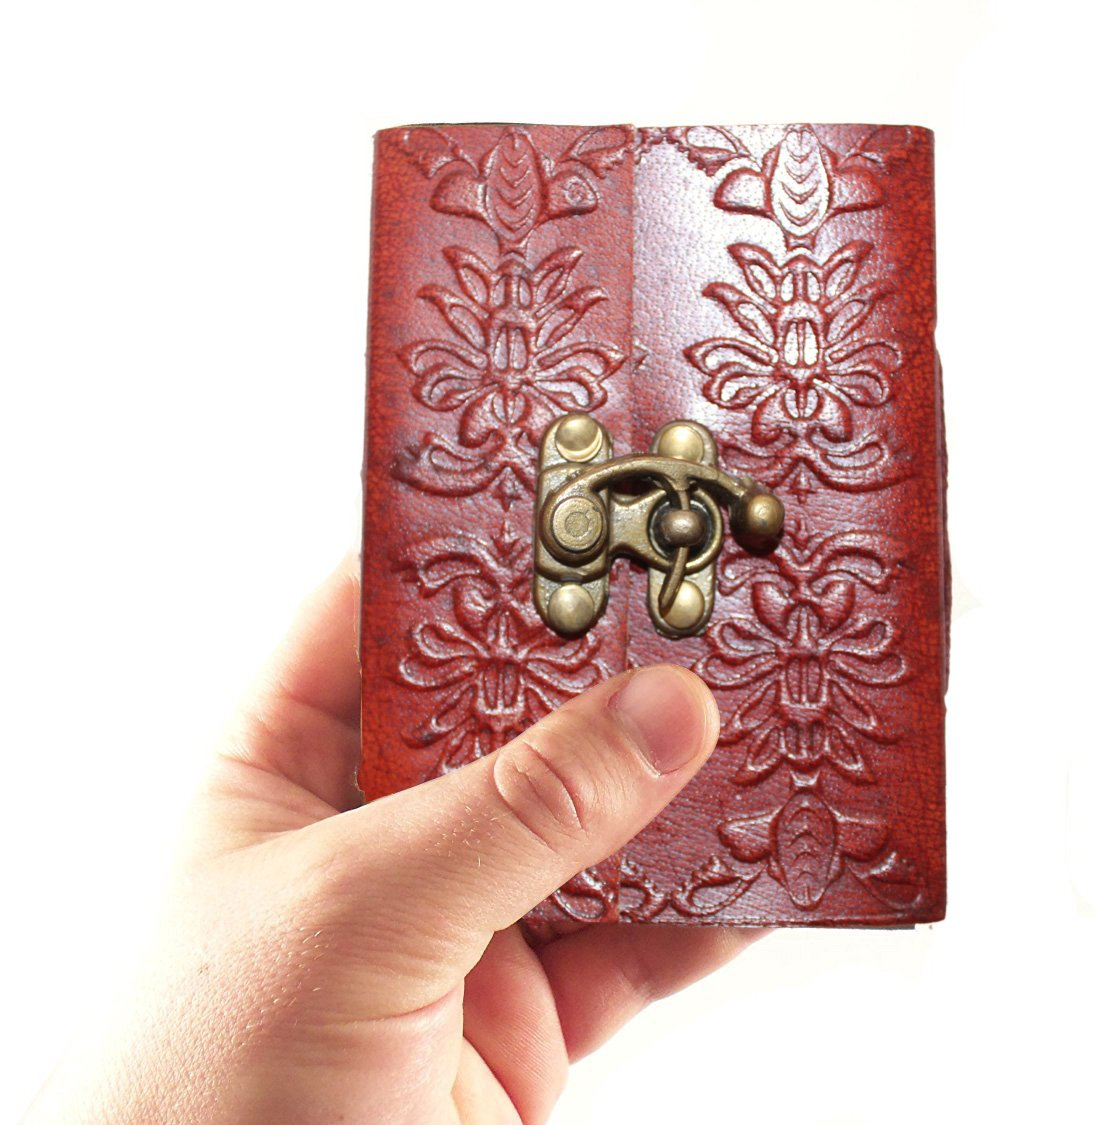 Second May Small Leather Journal Notebook Brown 4 Inches L 3 Inches W 1 Inch H Inches